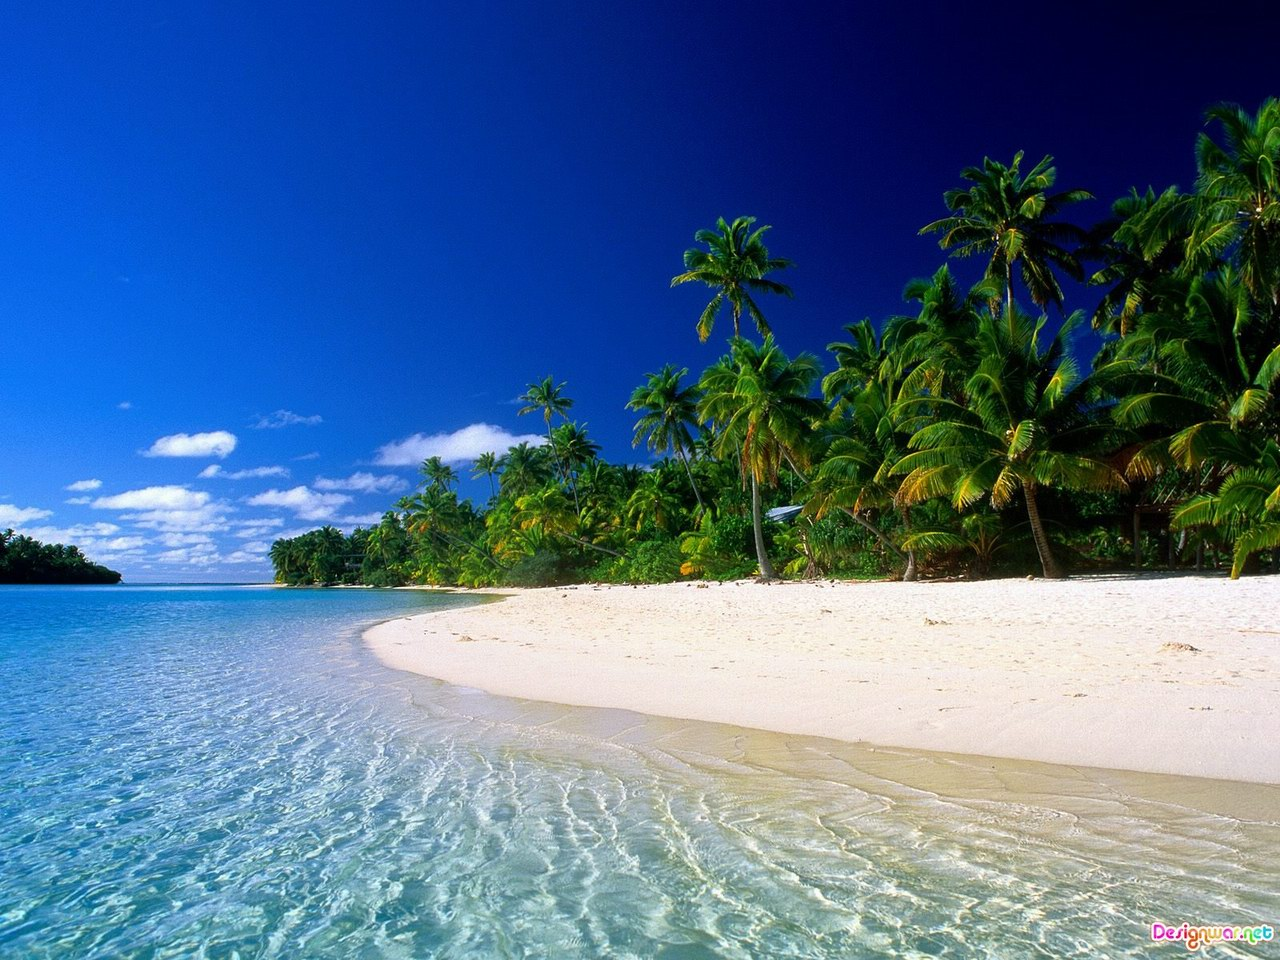 Free tropical beach backgrounds - Just for Sharing